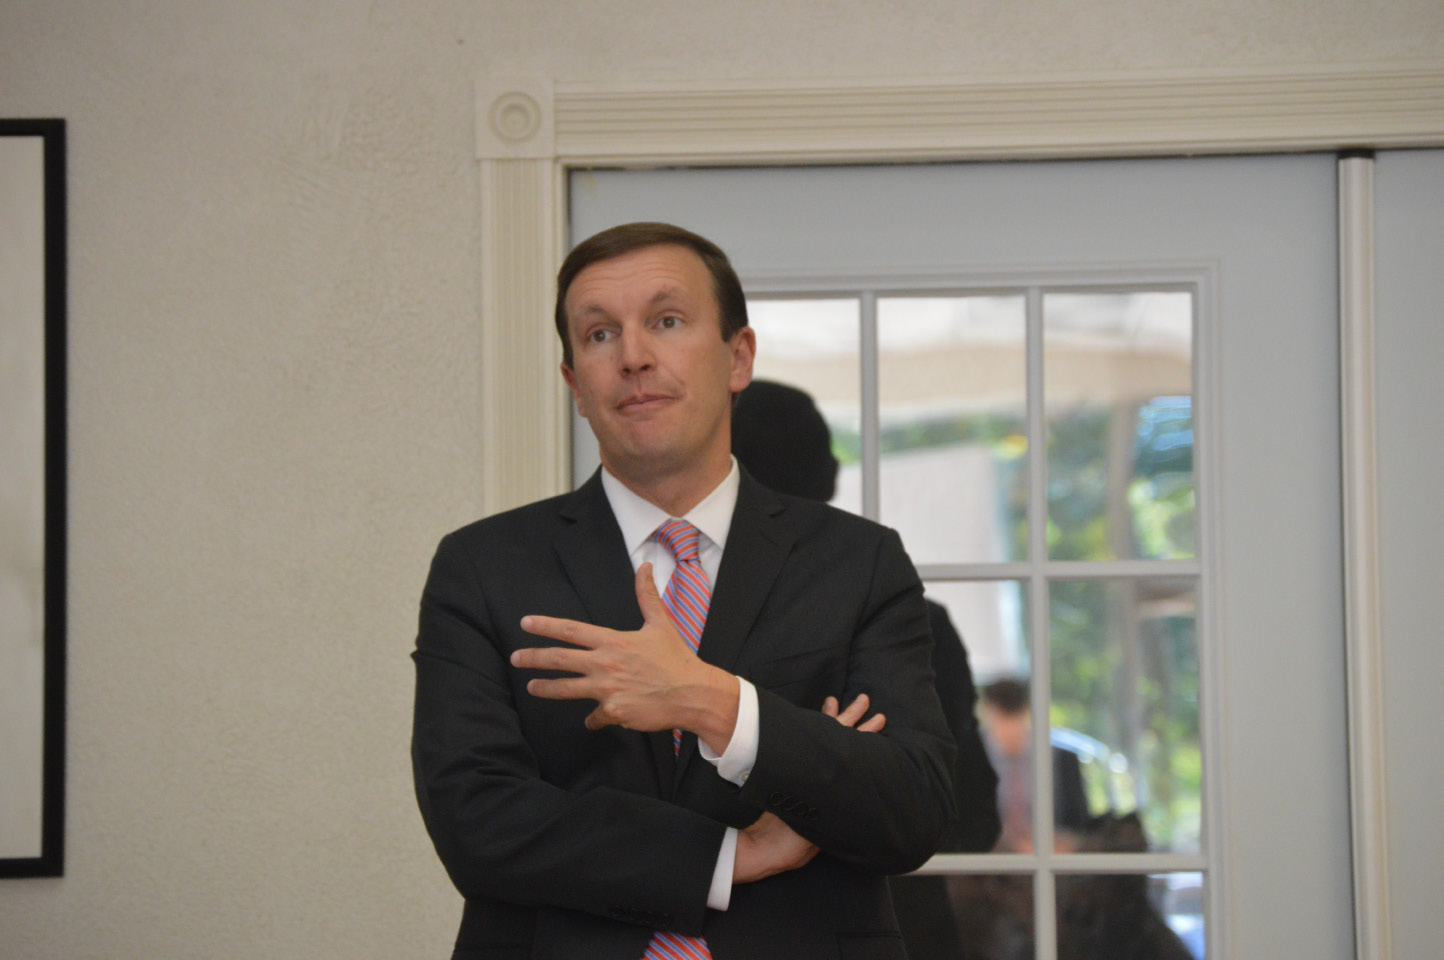 FILE PHOTO --  U.S. Sen Chris Murphy, D-Connecticut, told public officials and advocates Friday in Wallingford that he is pushing for federal funding to address opioid addiction. He asked those in attedance for advice on how it should be spent if approved. The Oct. 7, 2016   meeting was held at the Coalition for a Better Wallingford